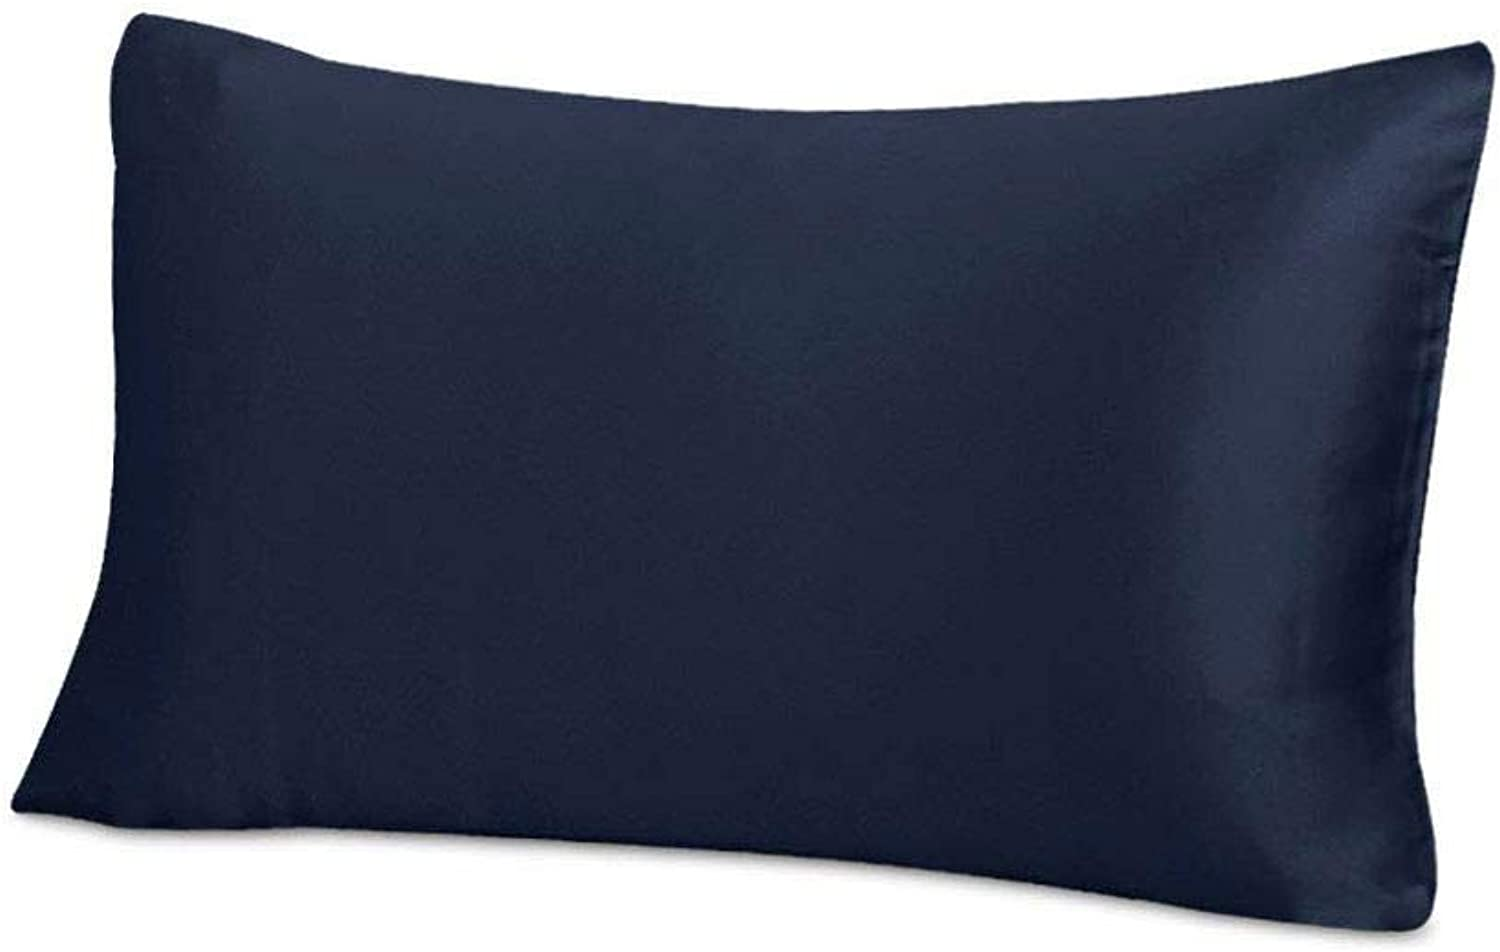 THXSILK Silk Pillowcase for Hair and Skin-25 Momme Mulberry Silk Pillow Cover with Hidden Zipper, Pure Silk on Both Sides, King Size 20 x36 , Navy bluee